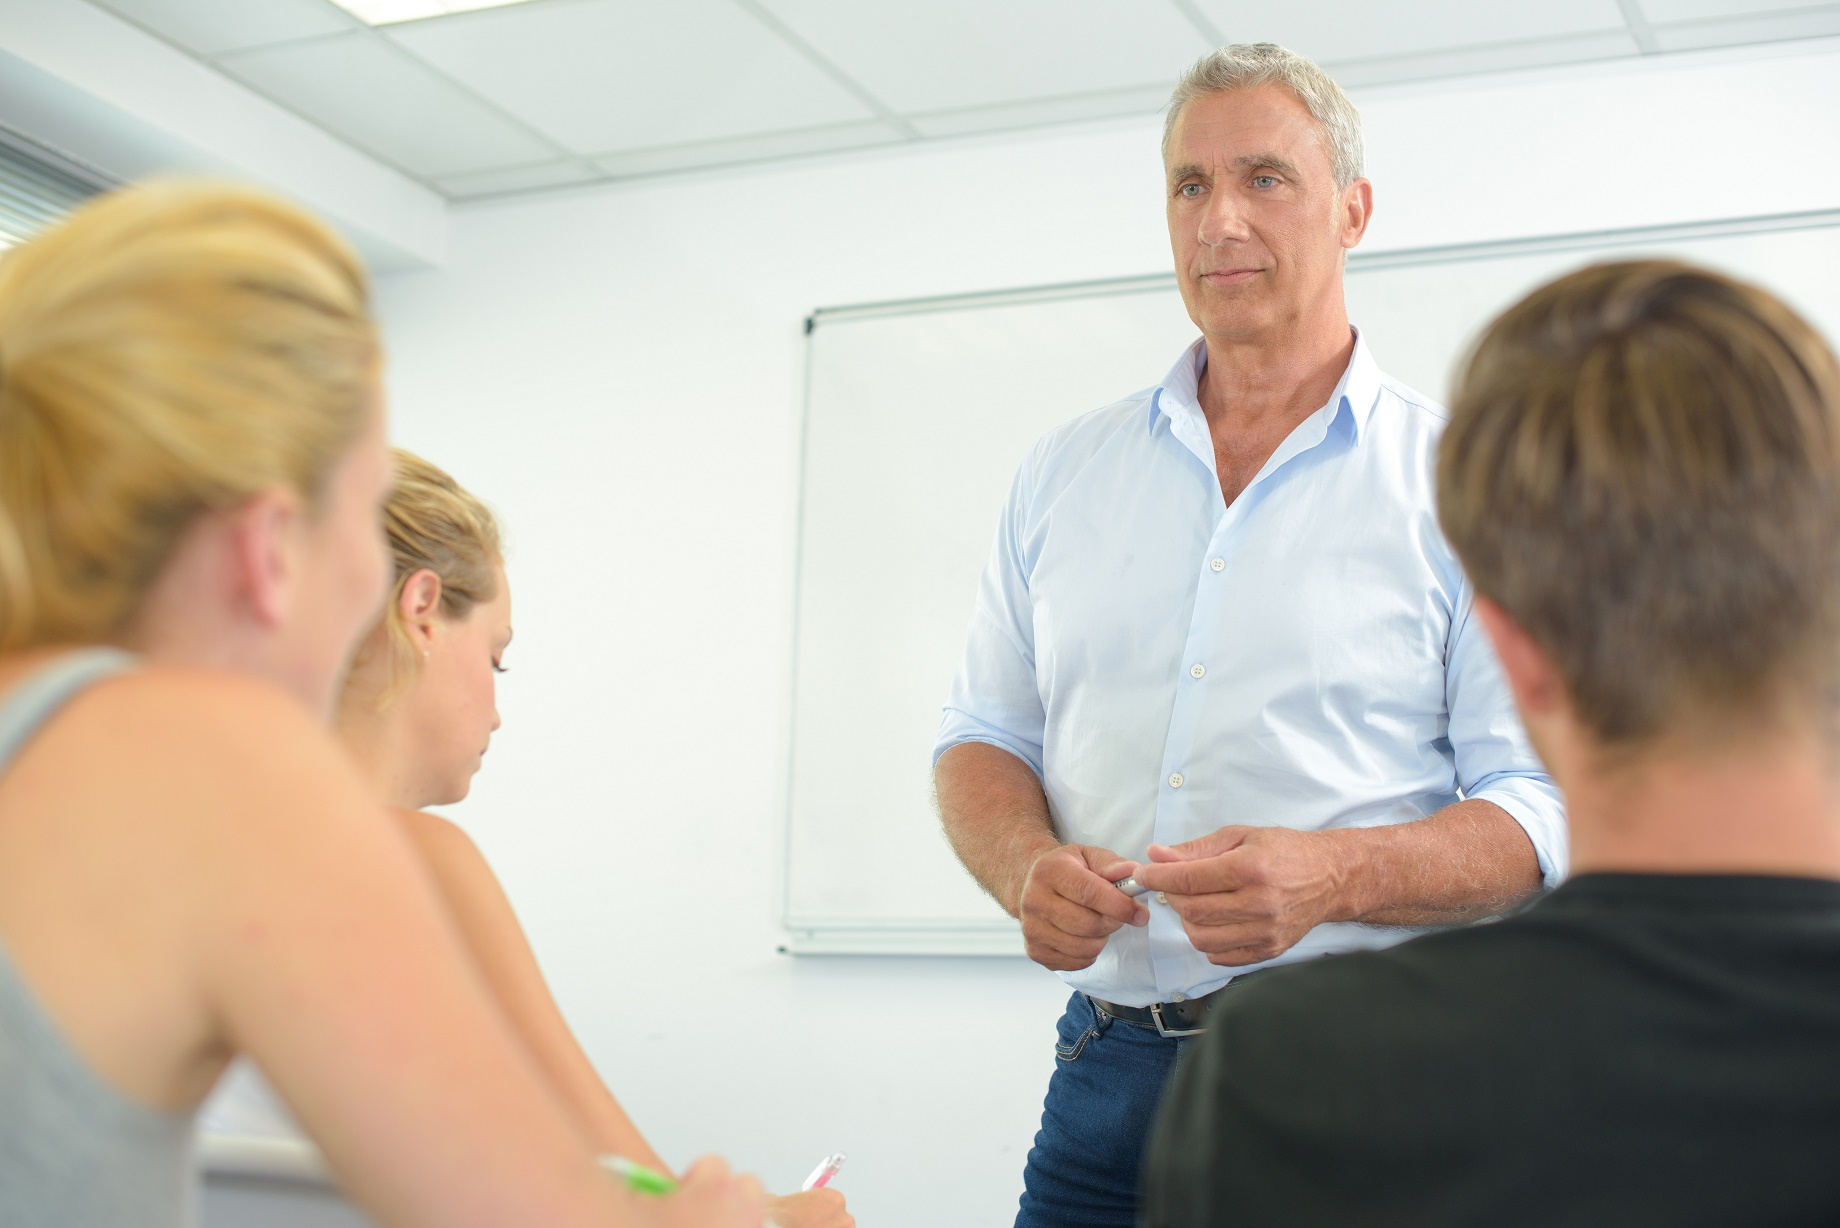 New courses launch to develop leadership skills